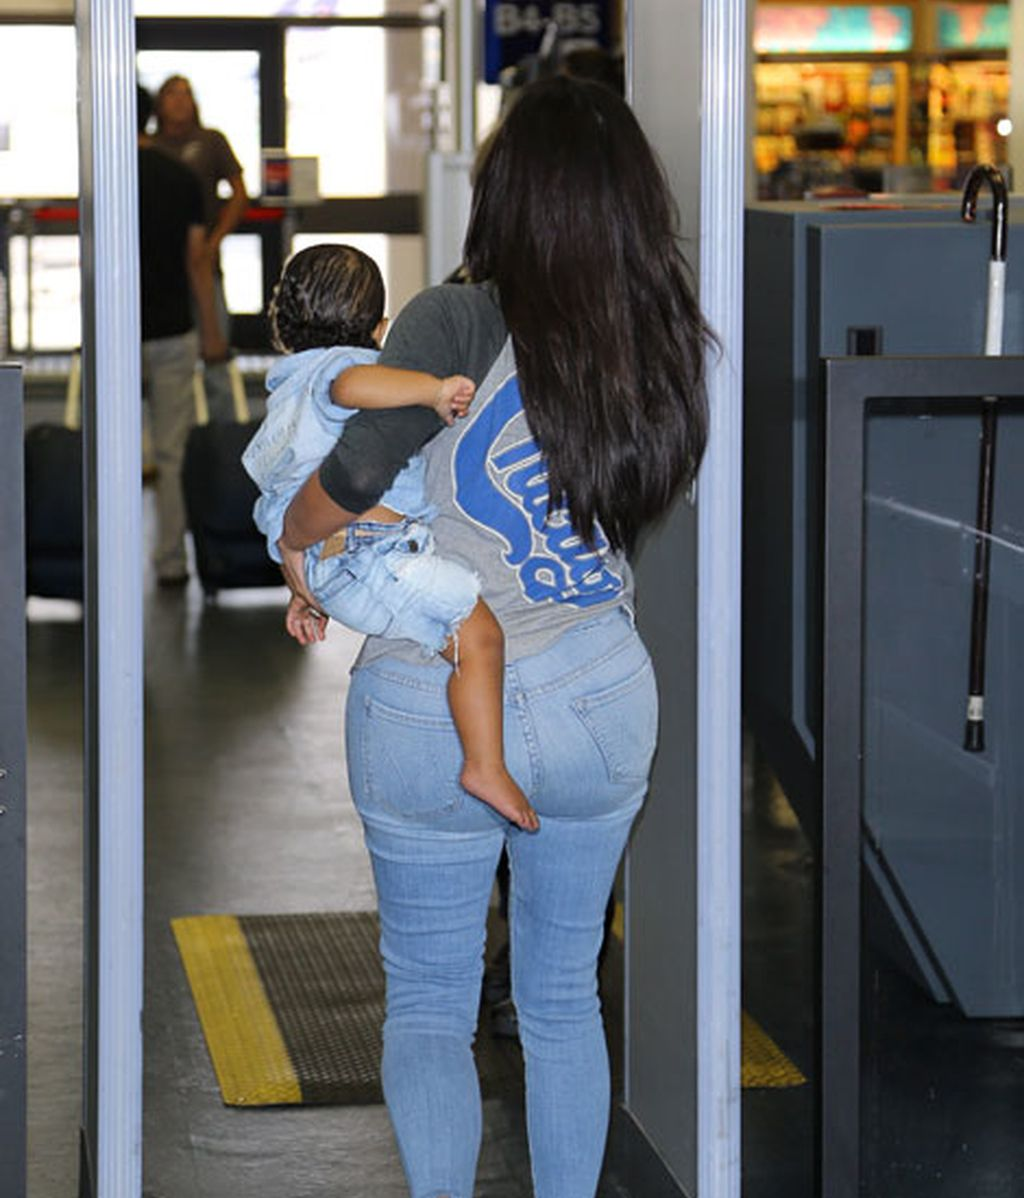 La 'baby-celeb' North West, ideal con su nuevo look